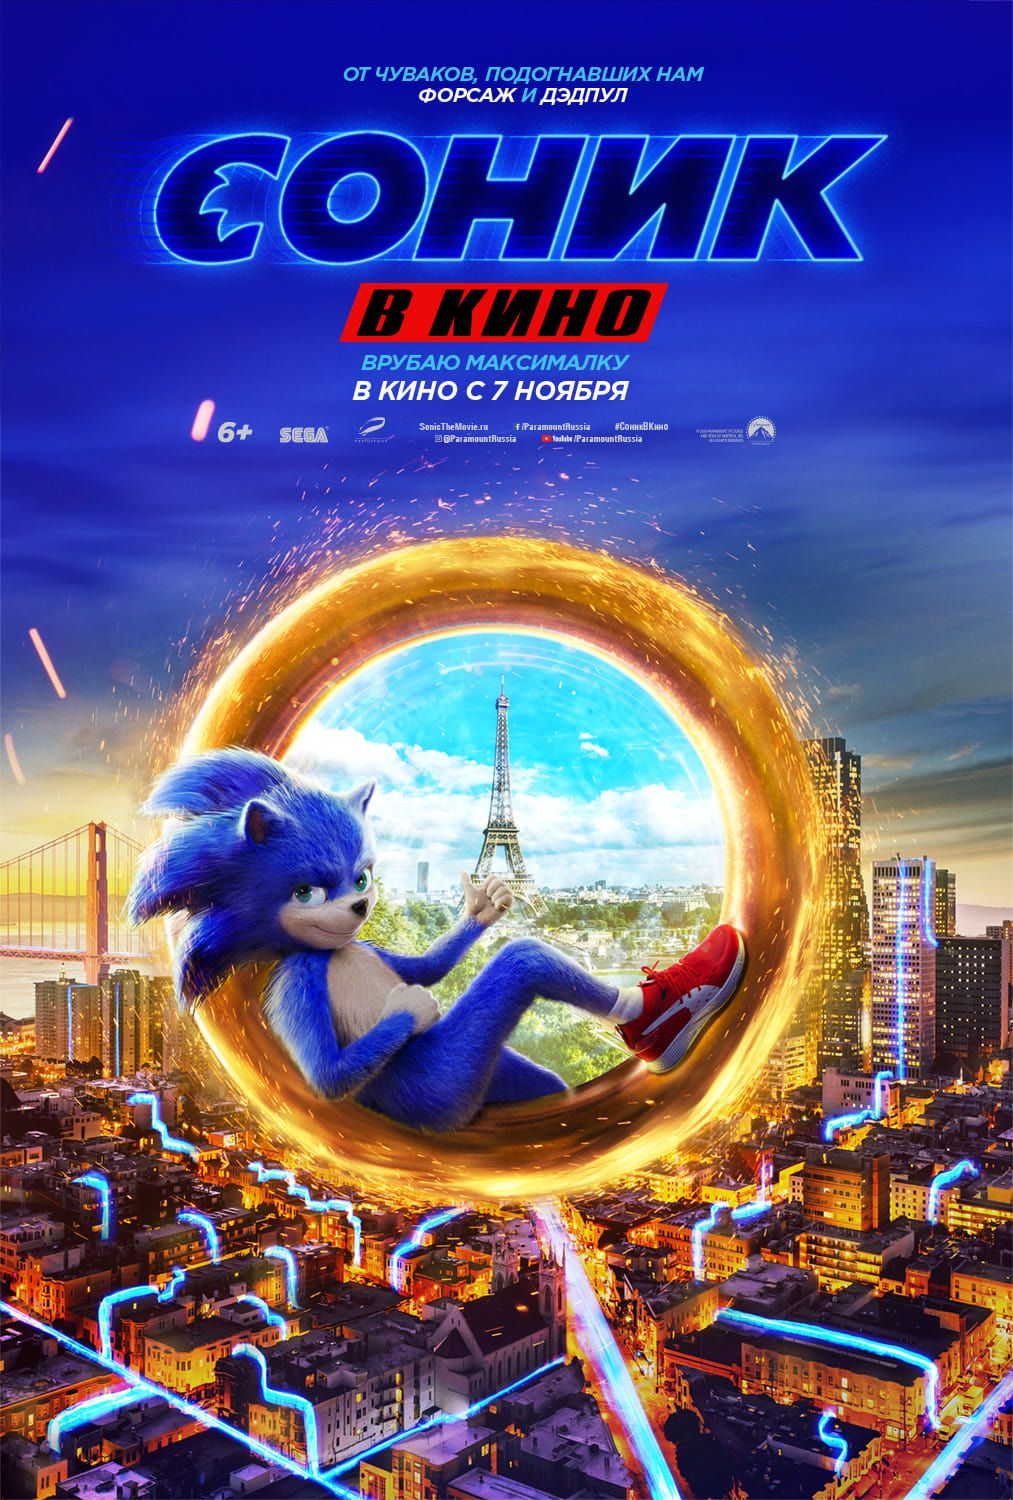 Sonic The Hedgehog Belgie Versie Kijken Volledige Film Sonic The Hedgehog Hedgehog Movie Free Movies Online